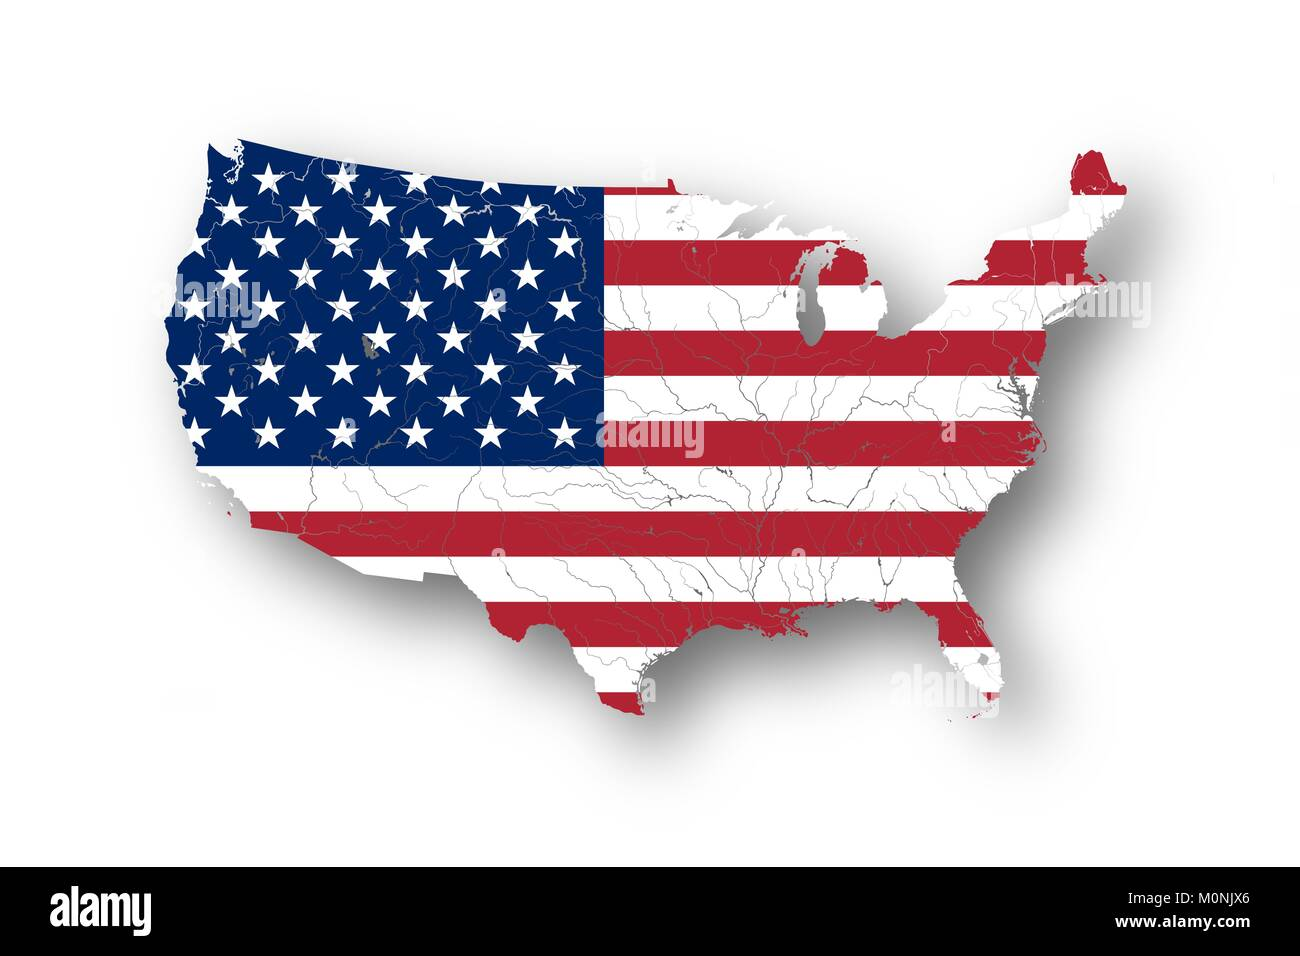 Map of the United States of America with American flag. Colors of ...